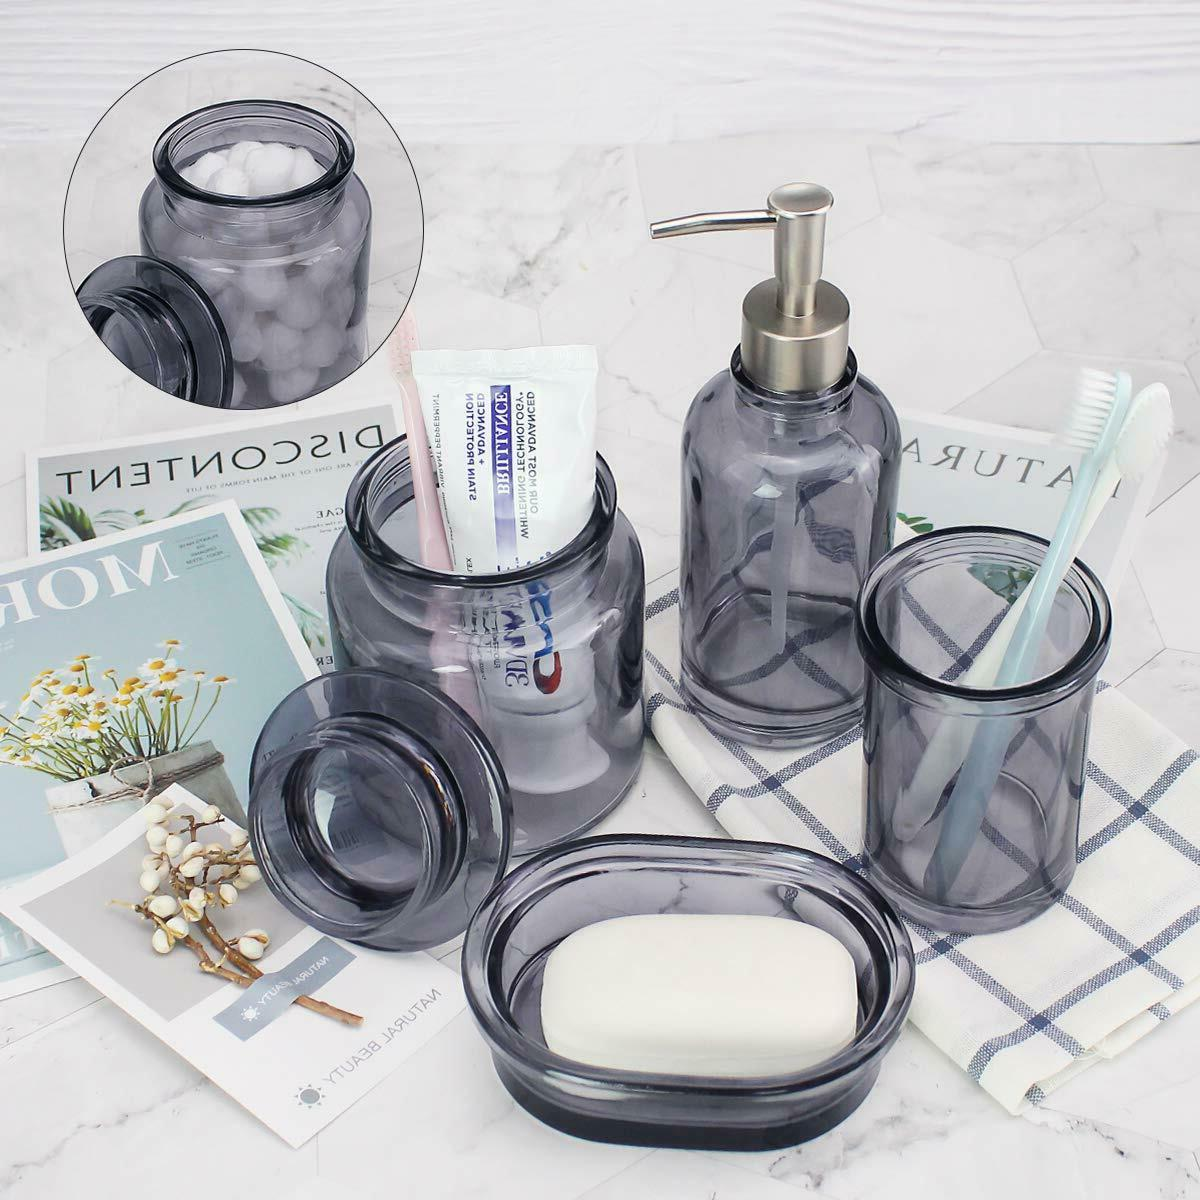 Glass Accessories Set Soap Holder, Tumbler